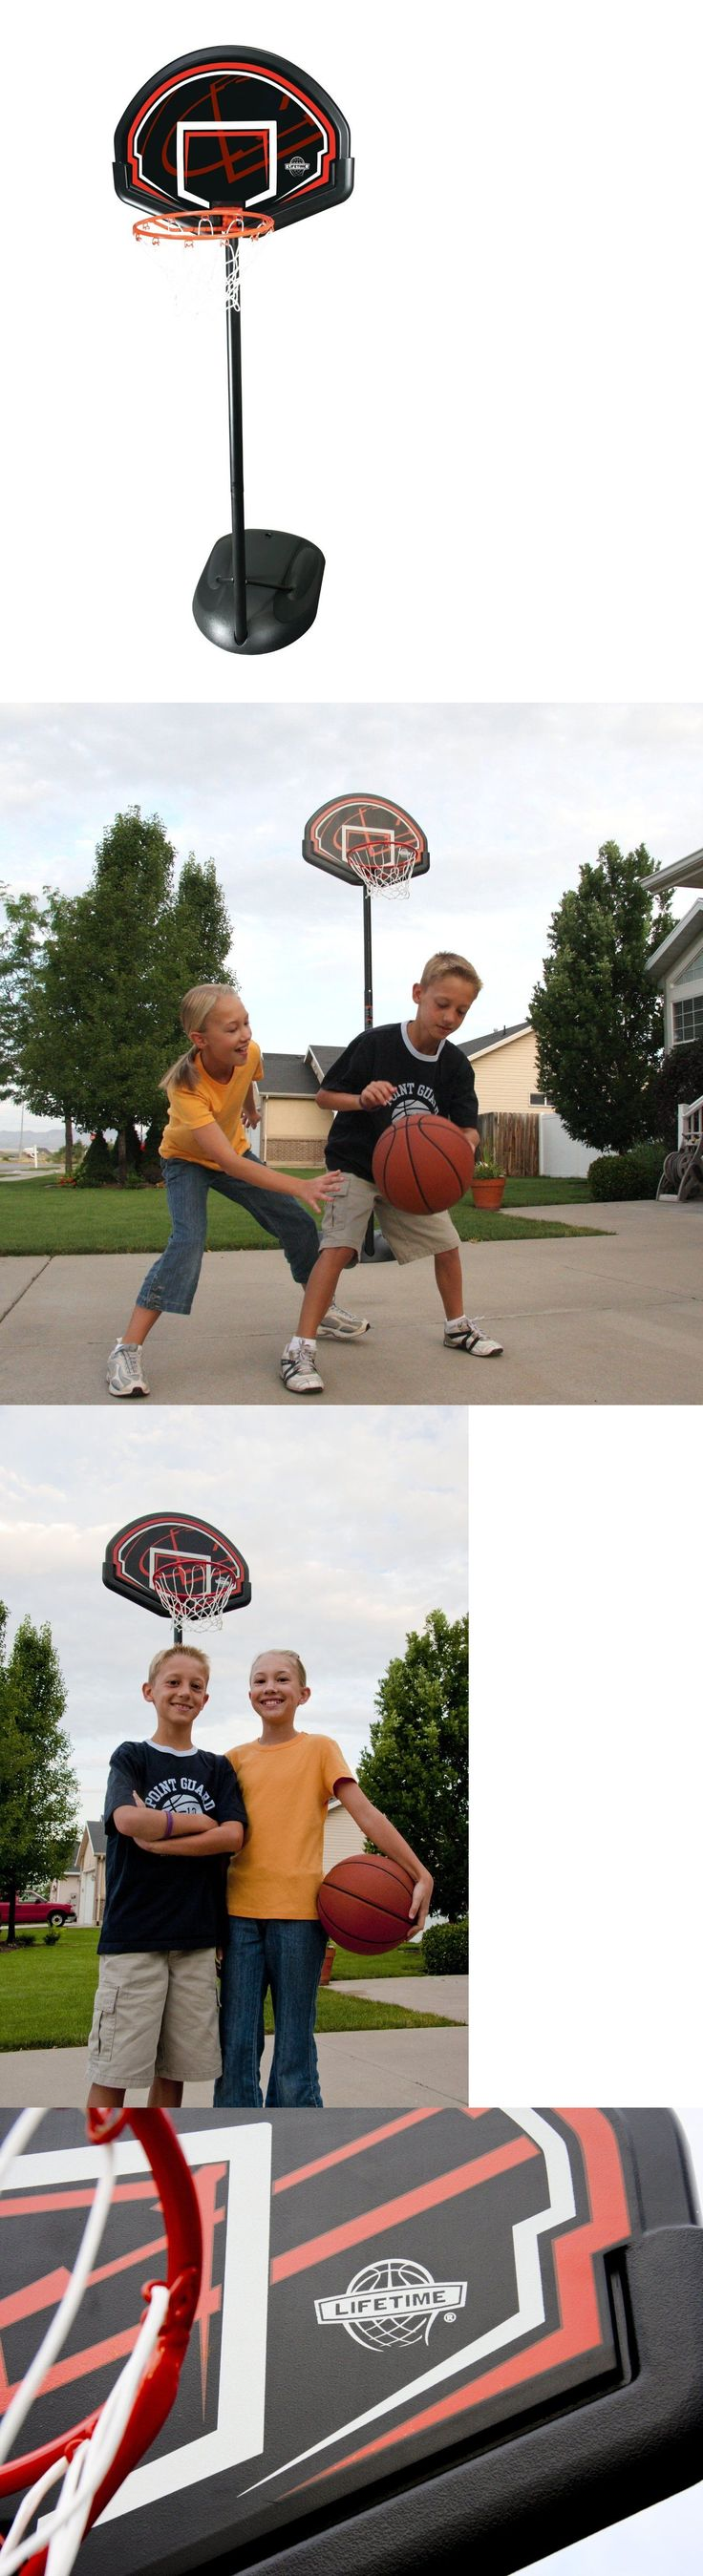 Backboard Systems 21196: Lifetime Basketball System, Backboard Youth Portable Basketball Goal, 90022 BUY IT NOW ONLY: $68.99